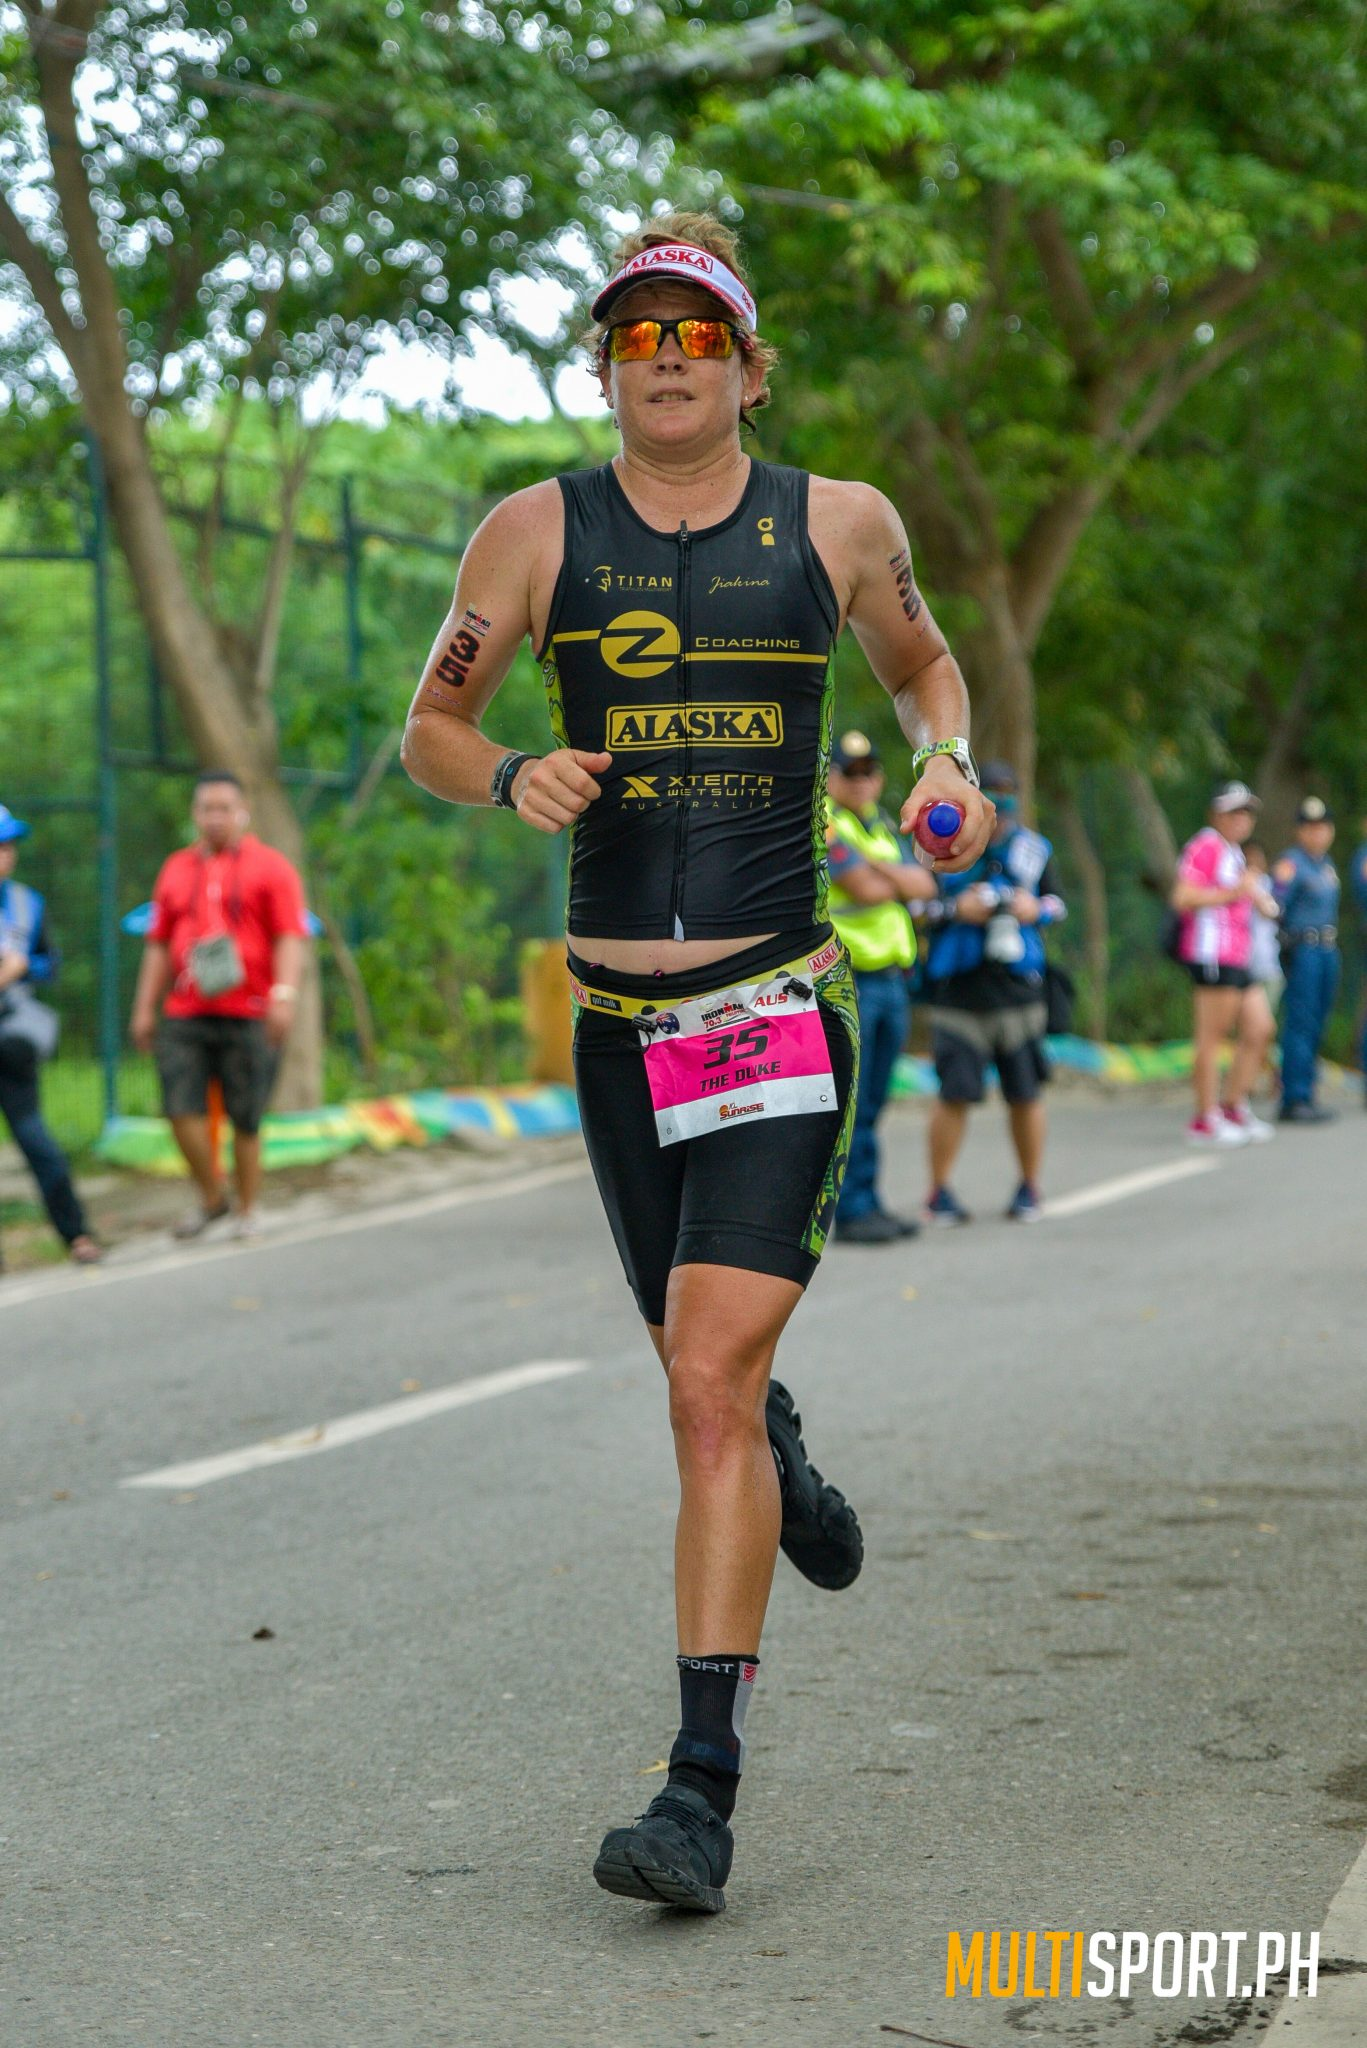 Gallery: 2018 Regent Aguila Ironman 70.3 Asia-Pacific Championship Race Day